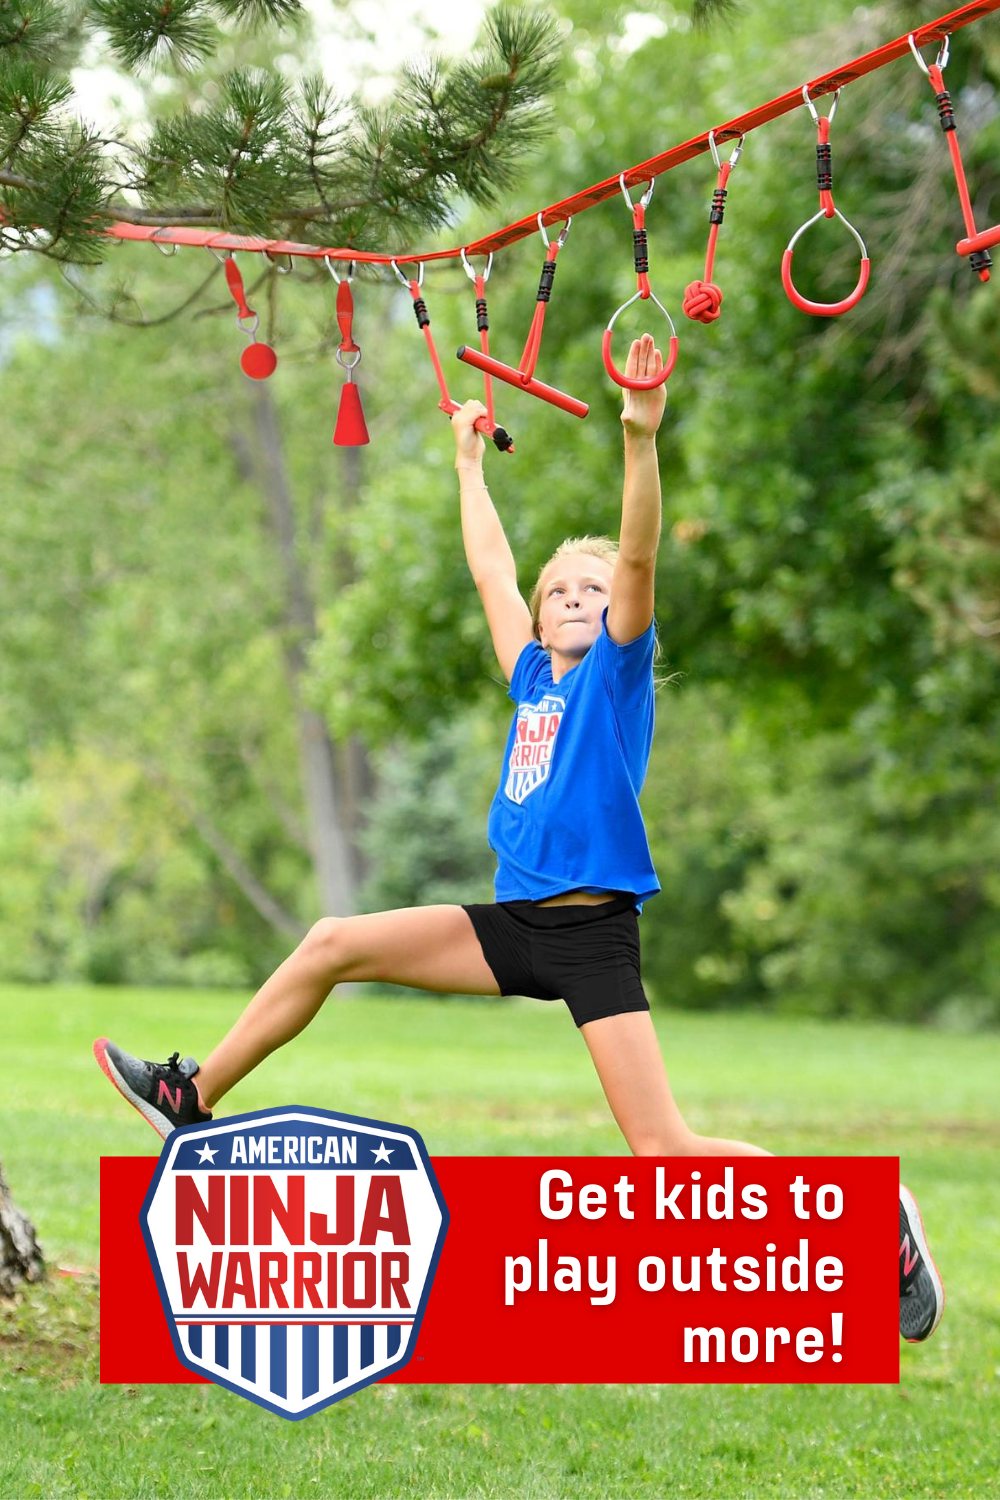 7070e88c1cd0fa167b7e2f2d04b8f74a - American Ninja Warrior Junior Application 2020